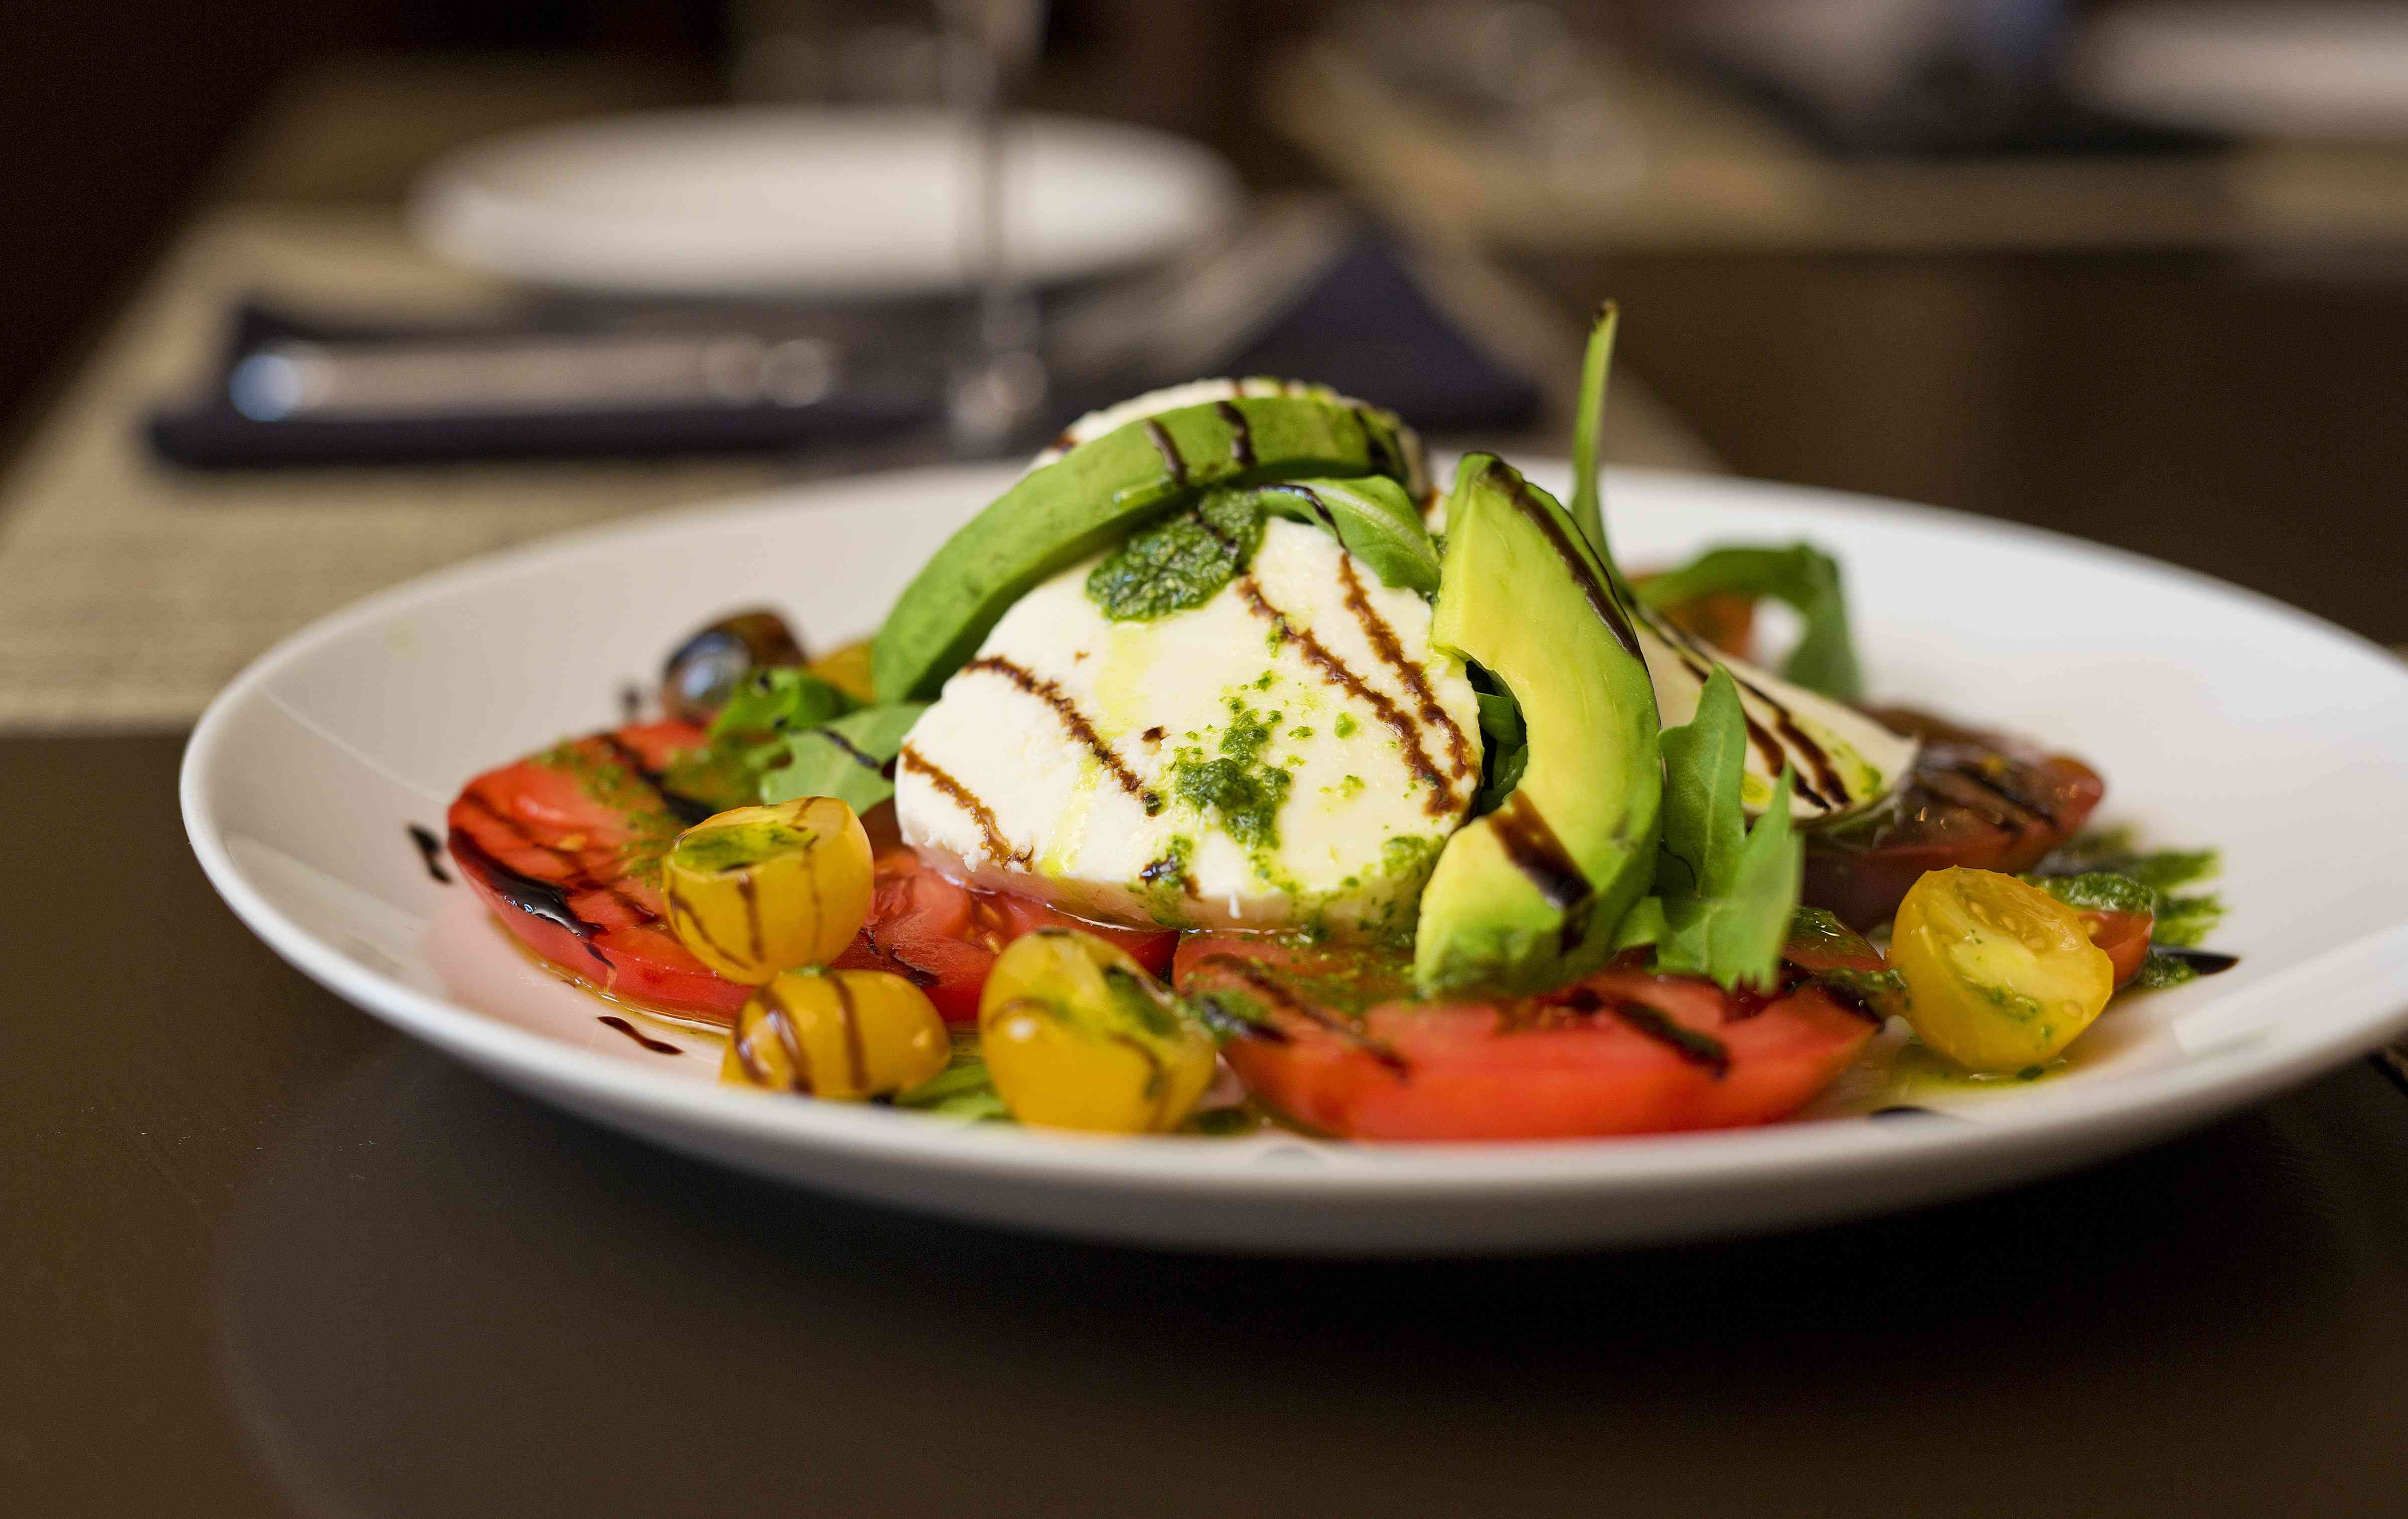 soft white cheese on a plate with sliced of avocado, tomatoes and halved cherry tomatoes drizzled with balsamic